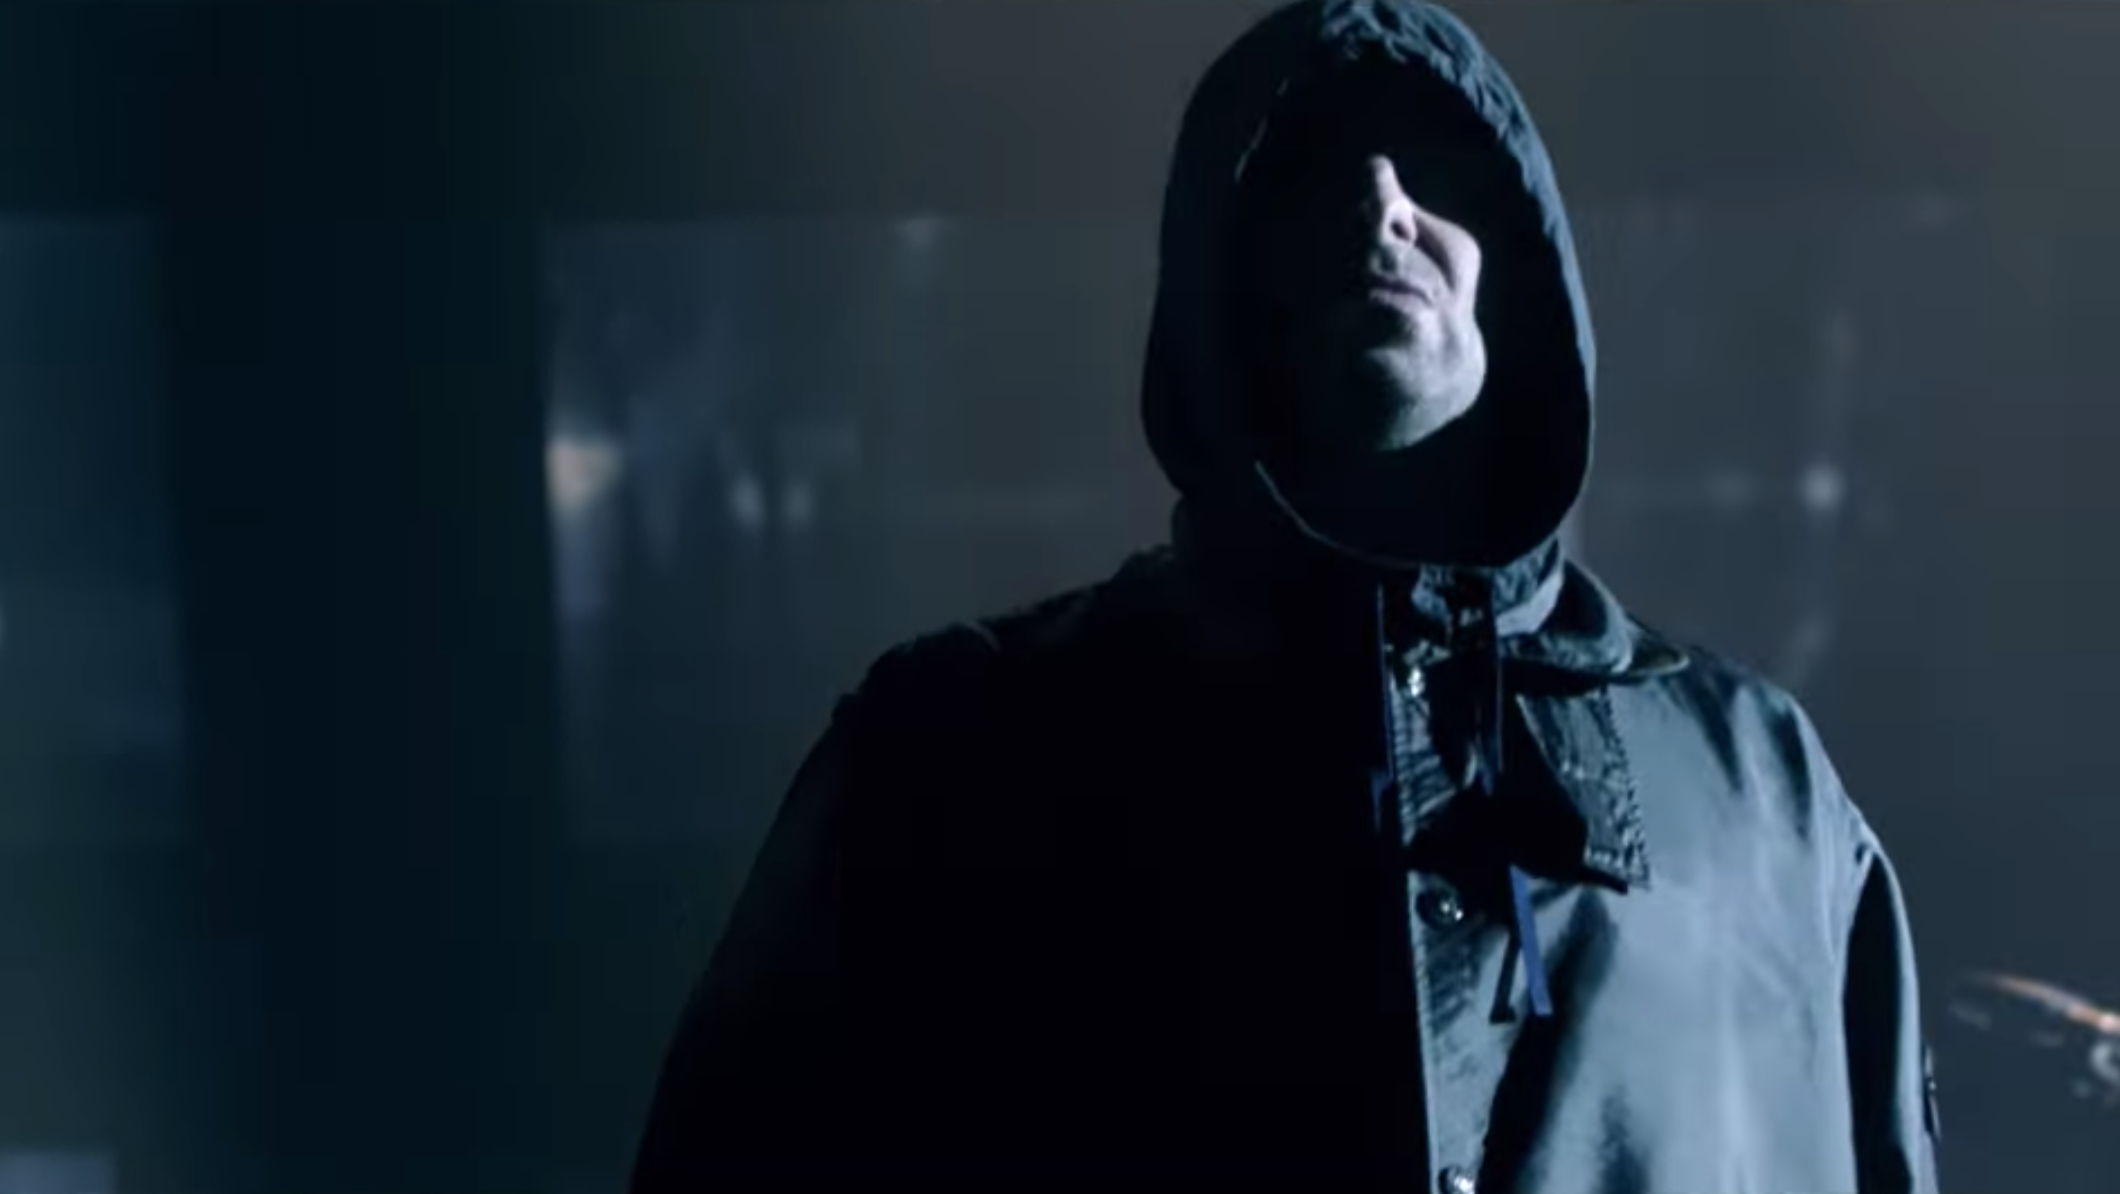 Watch First Trailer for Liam Gallagher's 'As It Was